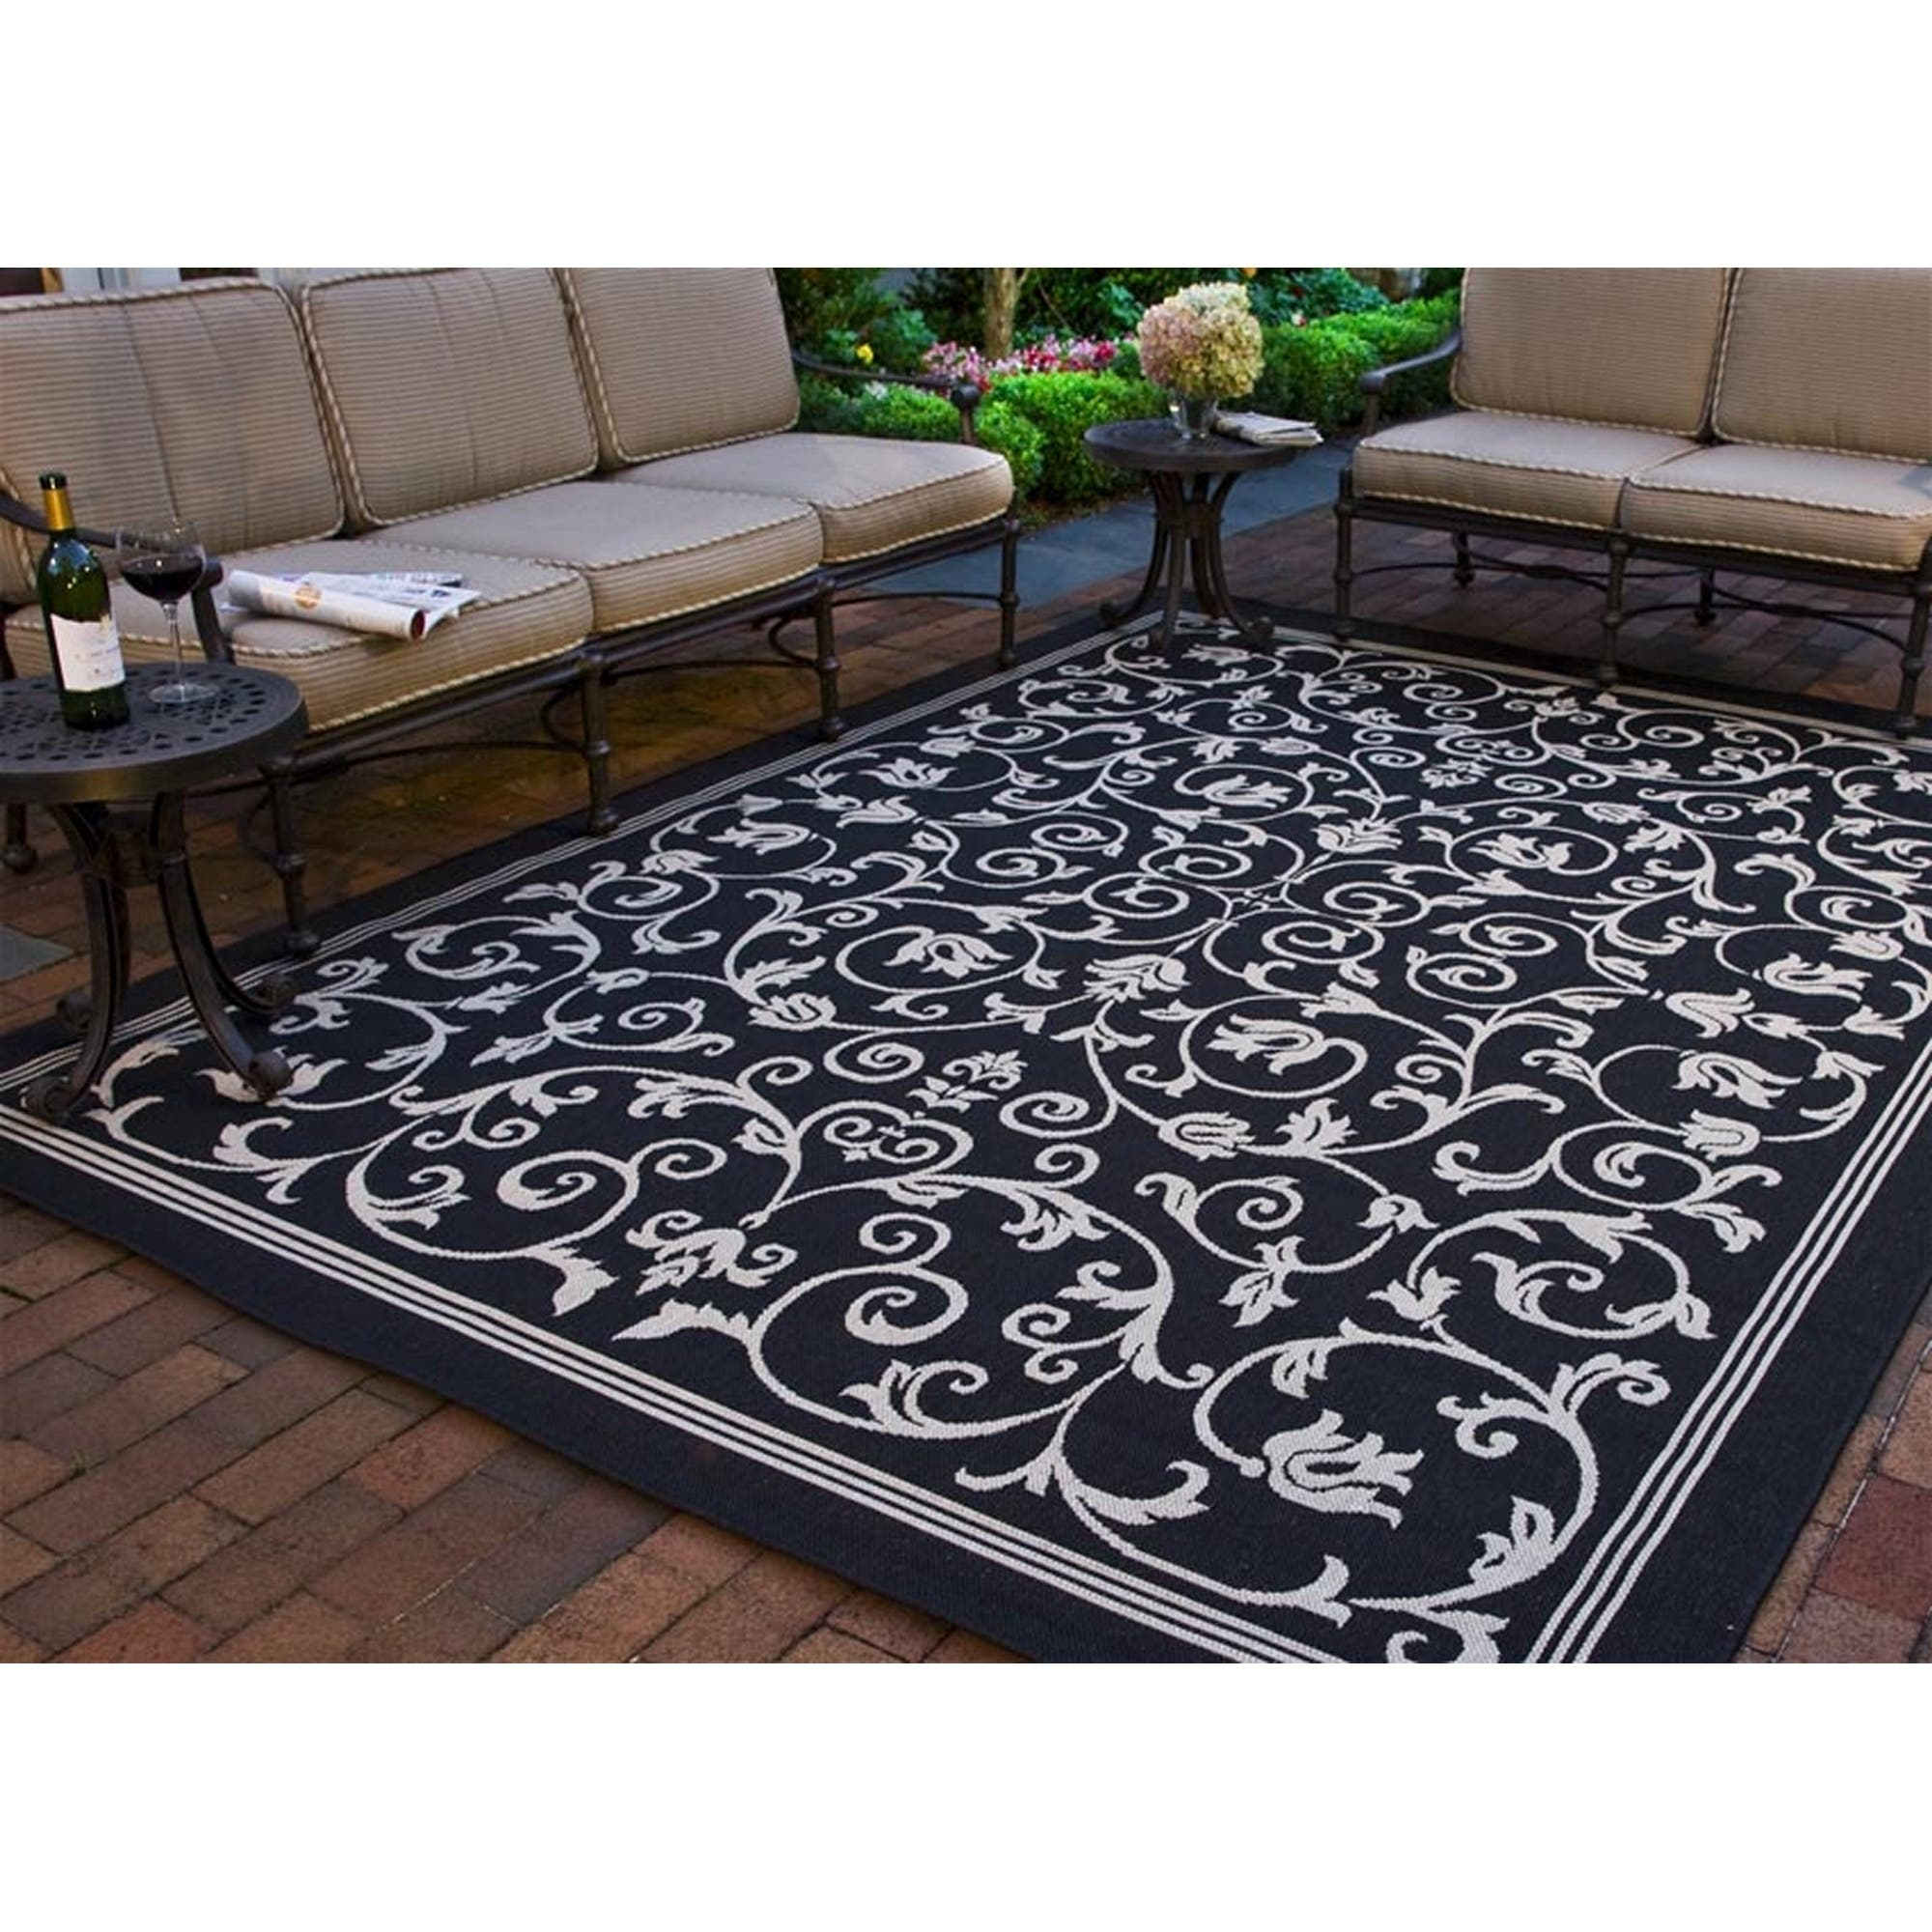 Outdoor 5x8 Area Rug: 5x8 - 6x9 Rugs For Less